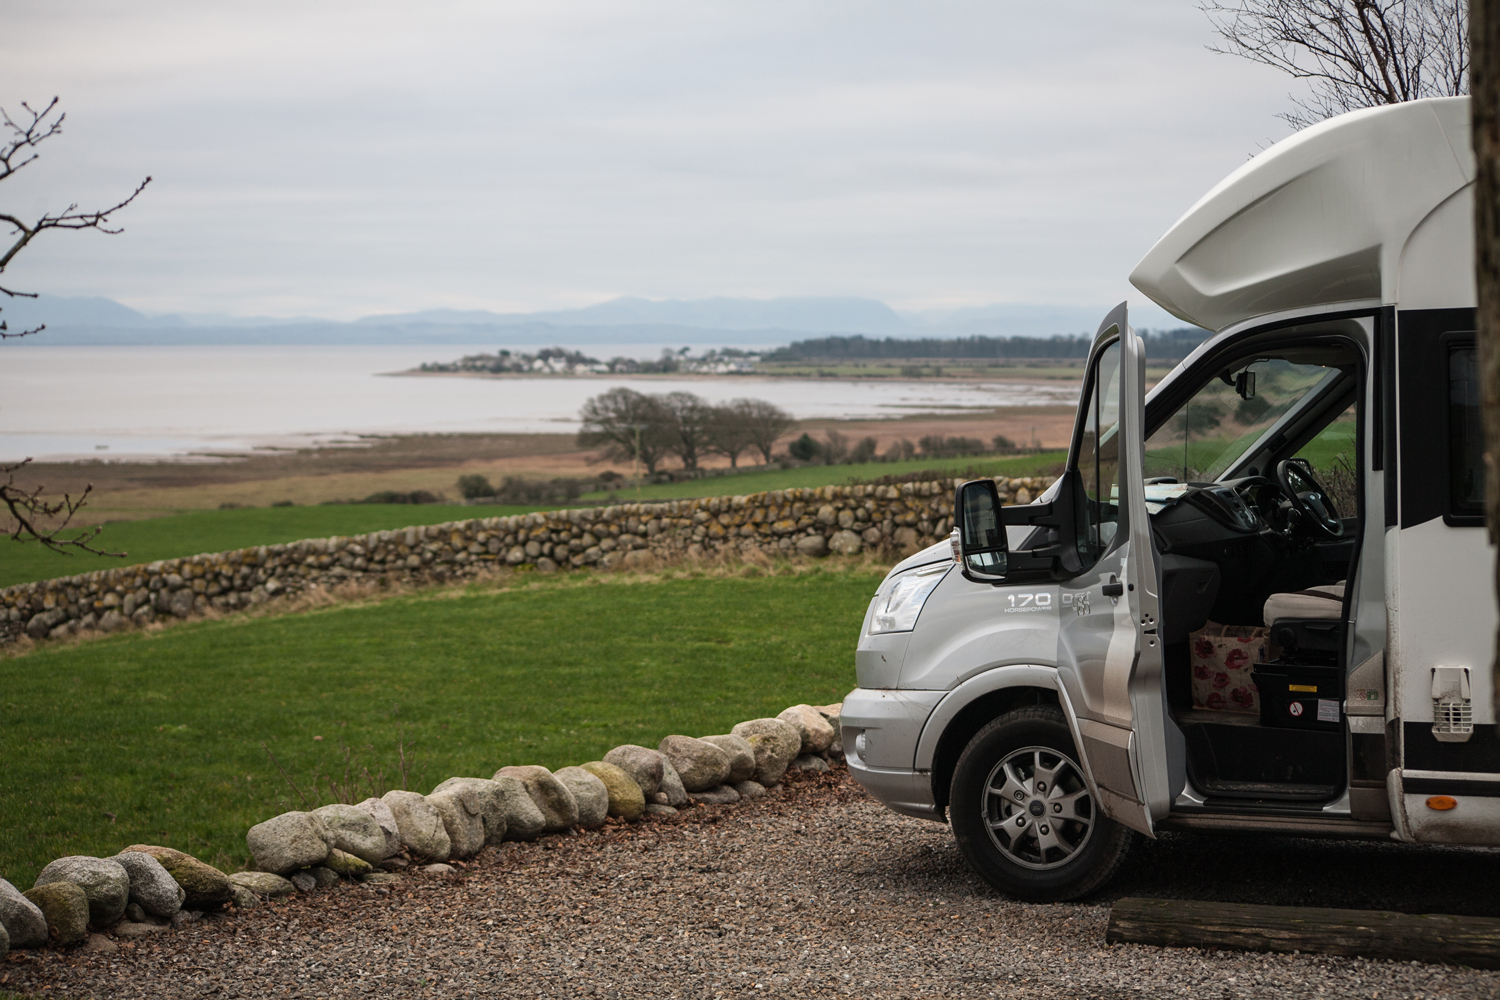 A motorhome with its door open parked in a gravel car park next to a large lake